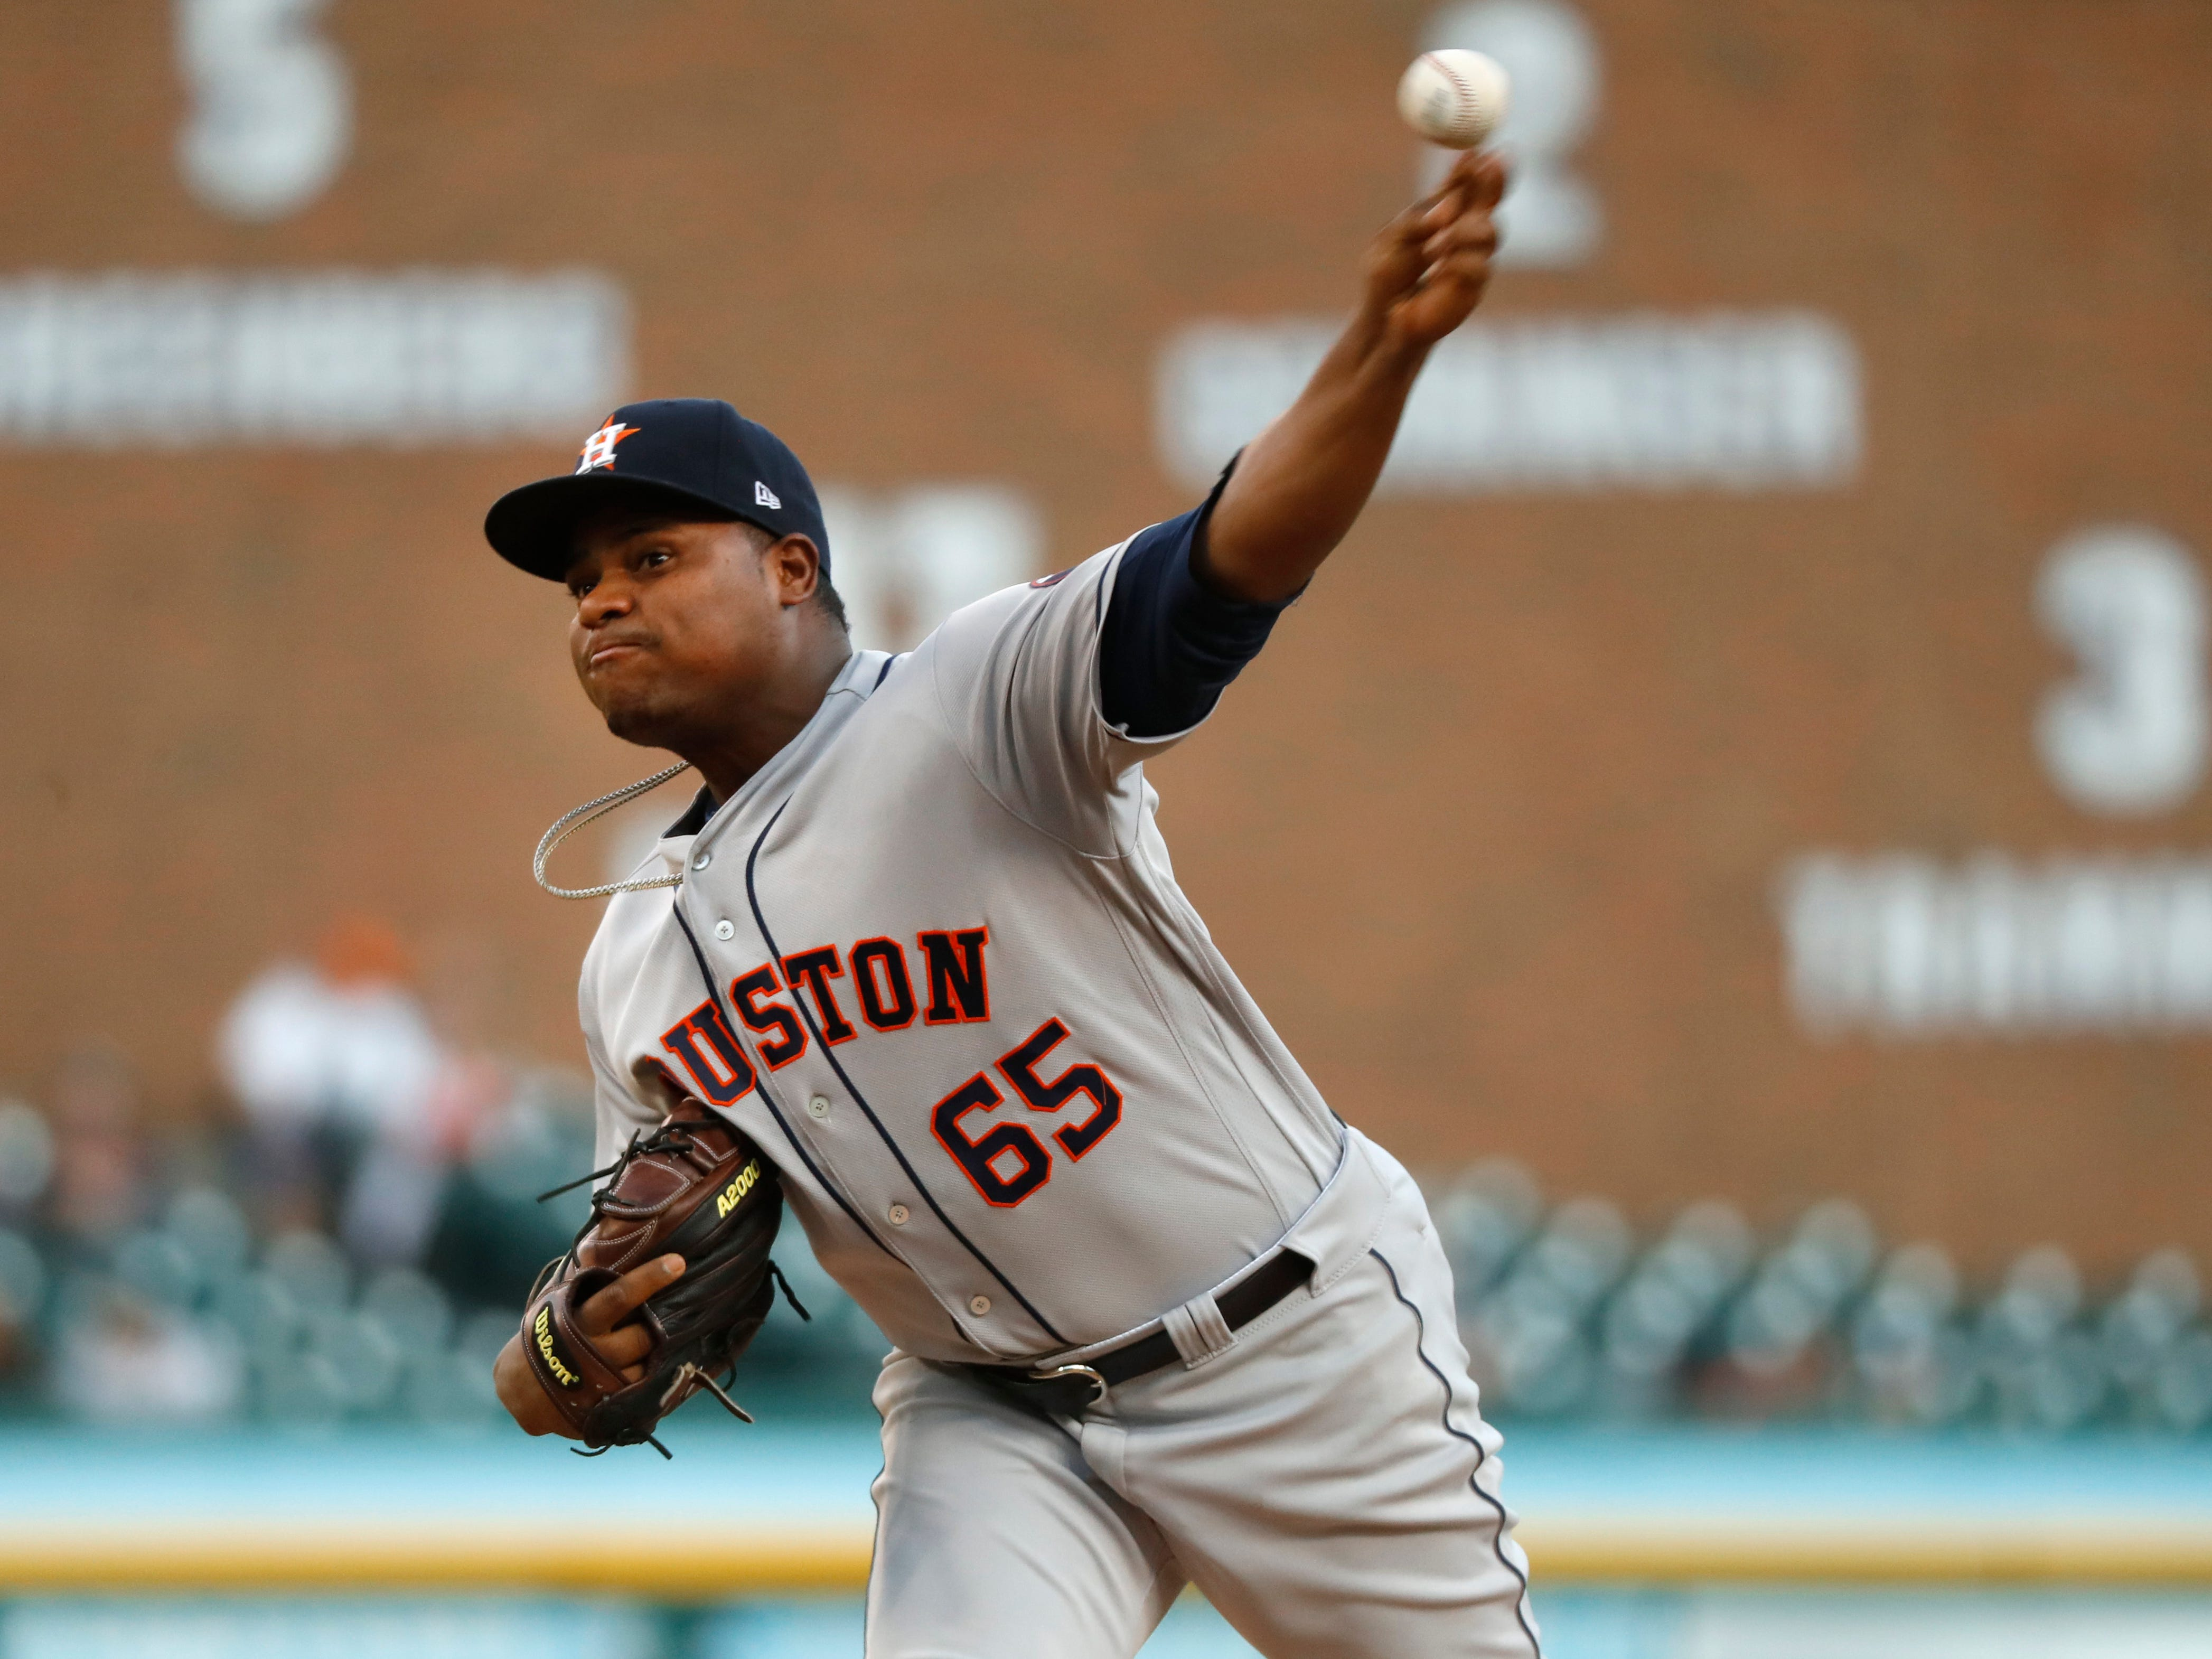 Houston Astros pitcher Framber Valdez throws in the second inning of a baseball game against the Detroit Tigers in Detroit, Tuesday, Sept. 11, 2018.